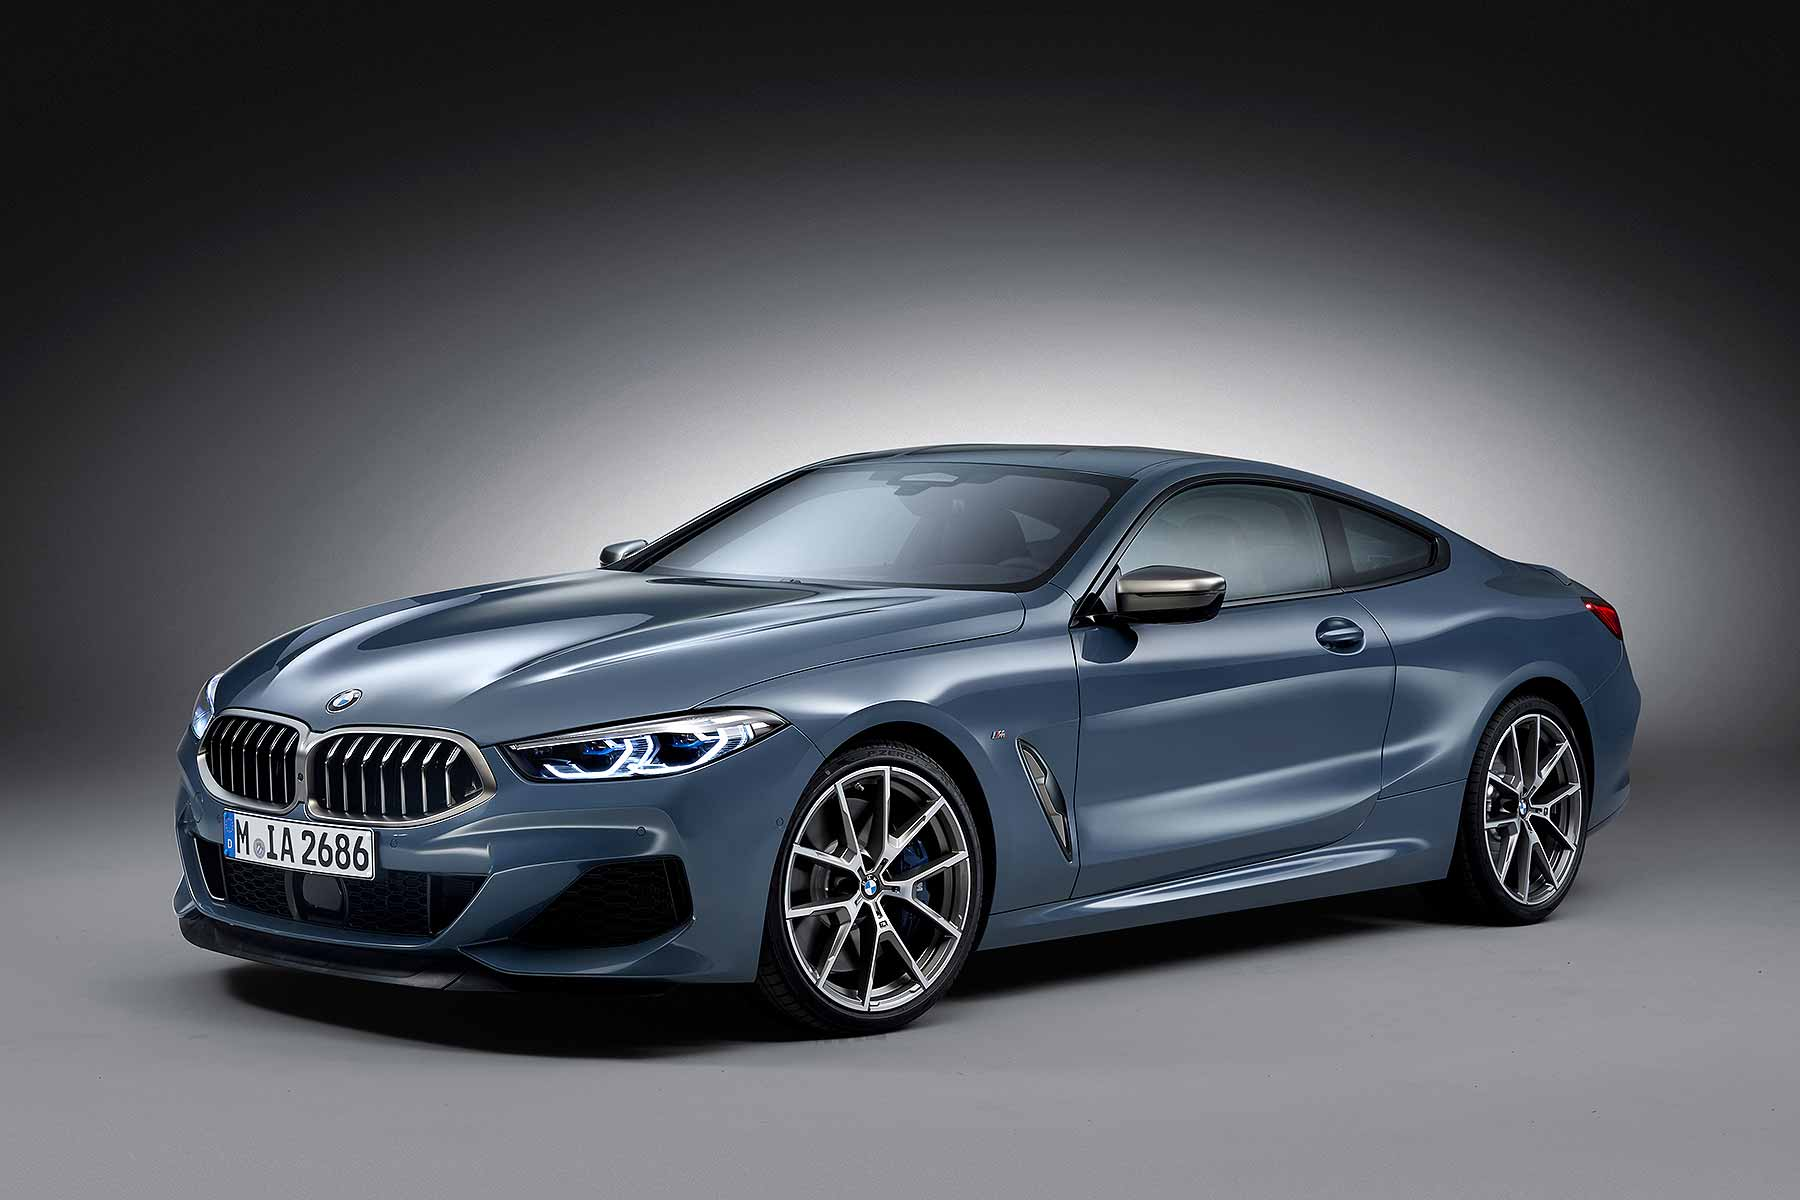 2018 bmw 8 series coupe motoring research. Black Bedroom Furniture Sets. Home Design Ideas